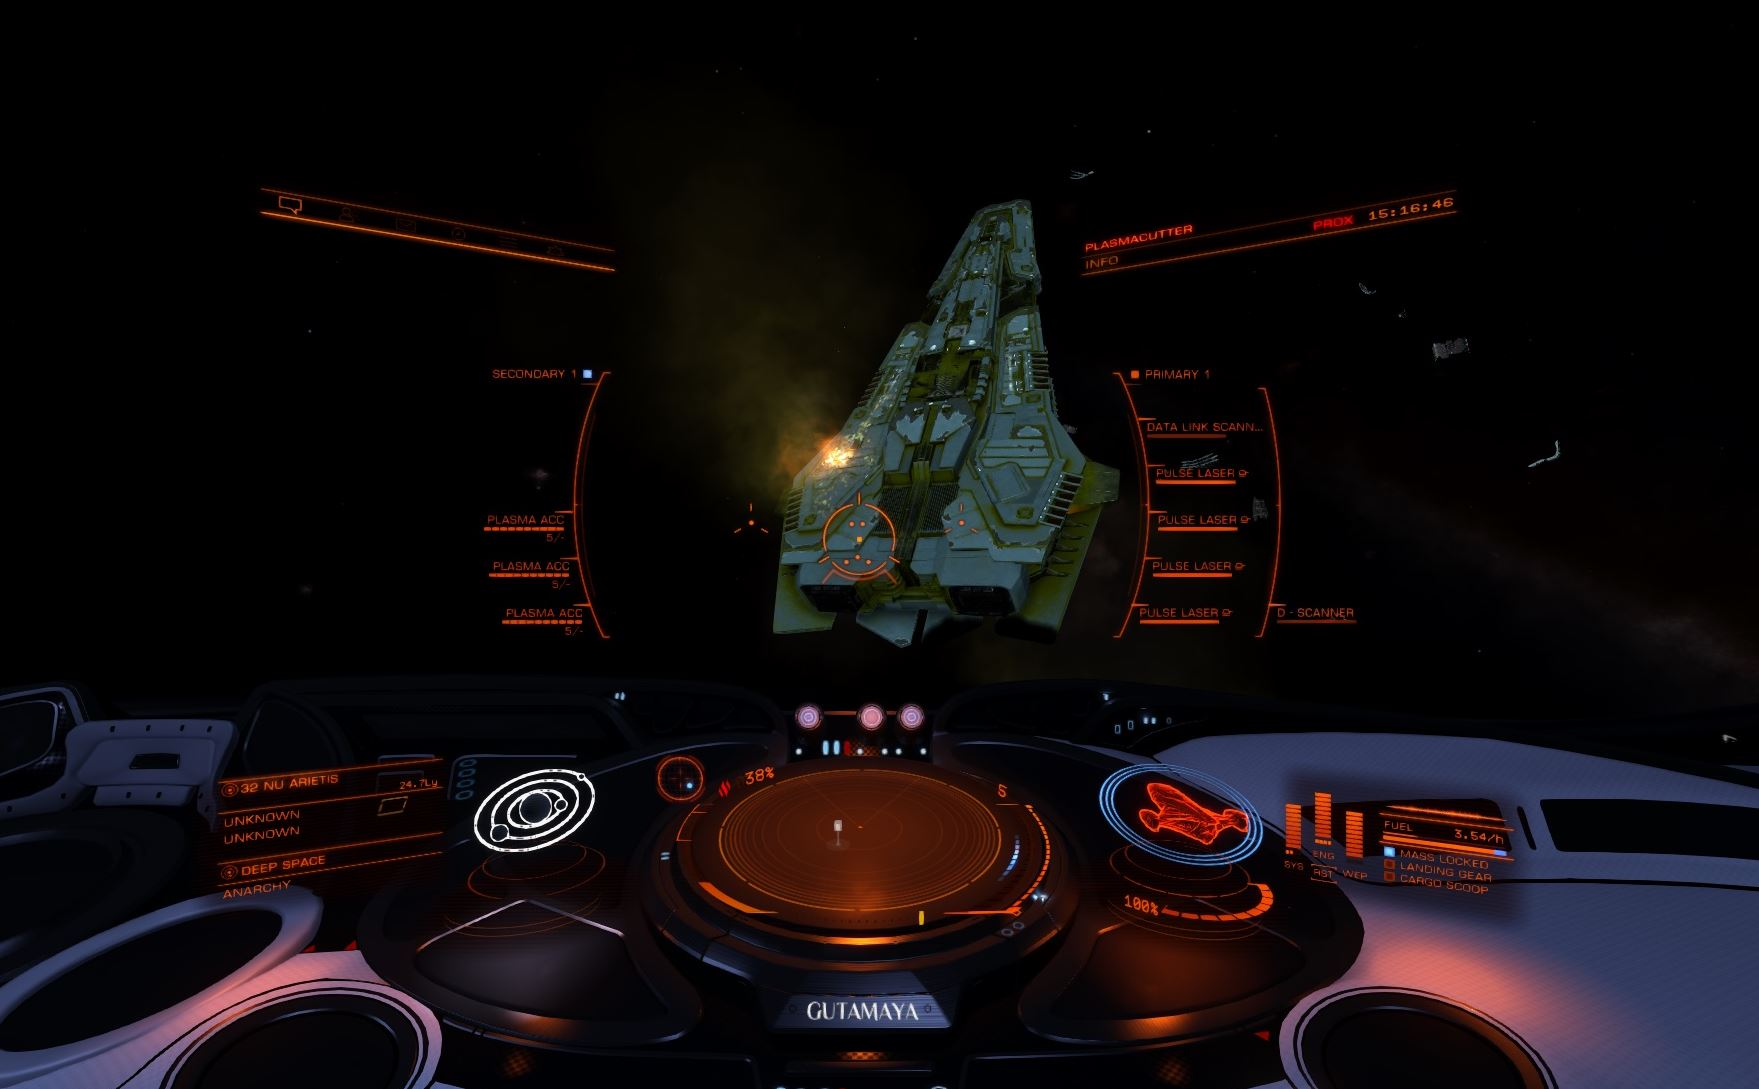 Distress Call with Unknown Ship in 32 Nu Arietis